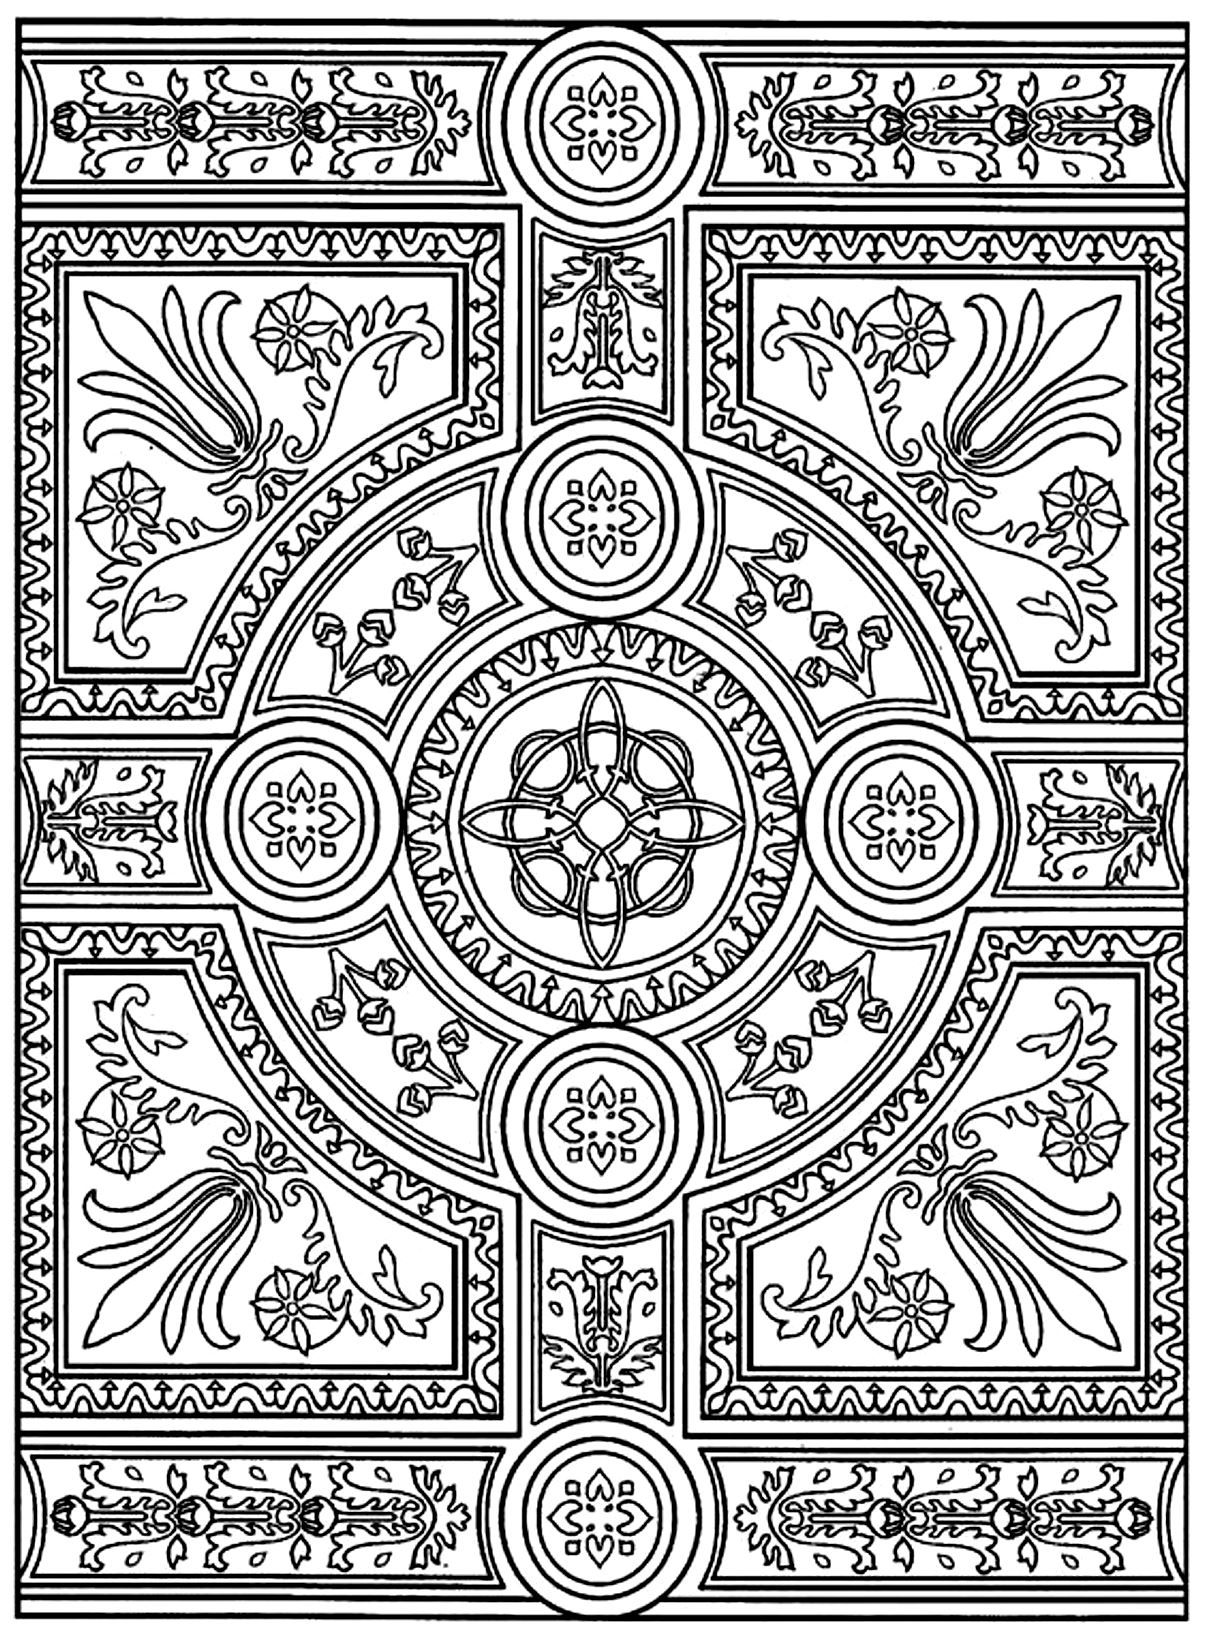 Anti stress colouring pages for adults - Zen Anti Stress To Print Parquet Patterns Image With Symmetrical From The Gallery